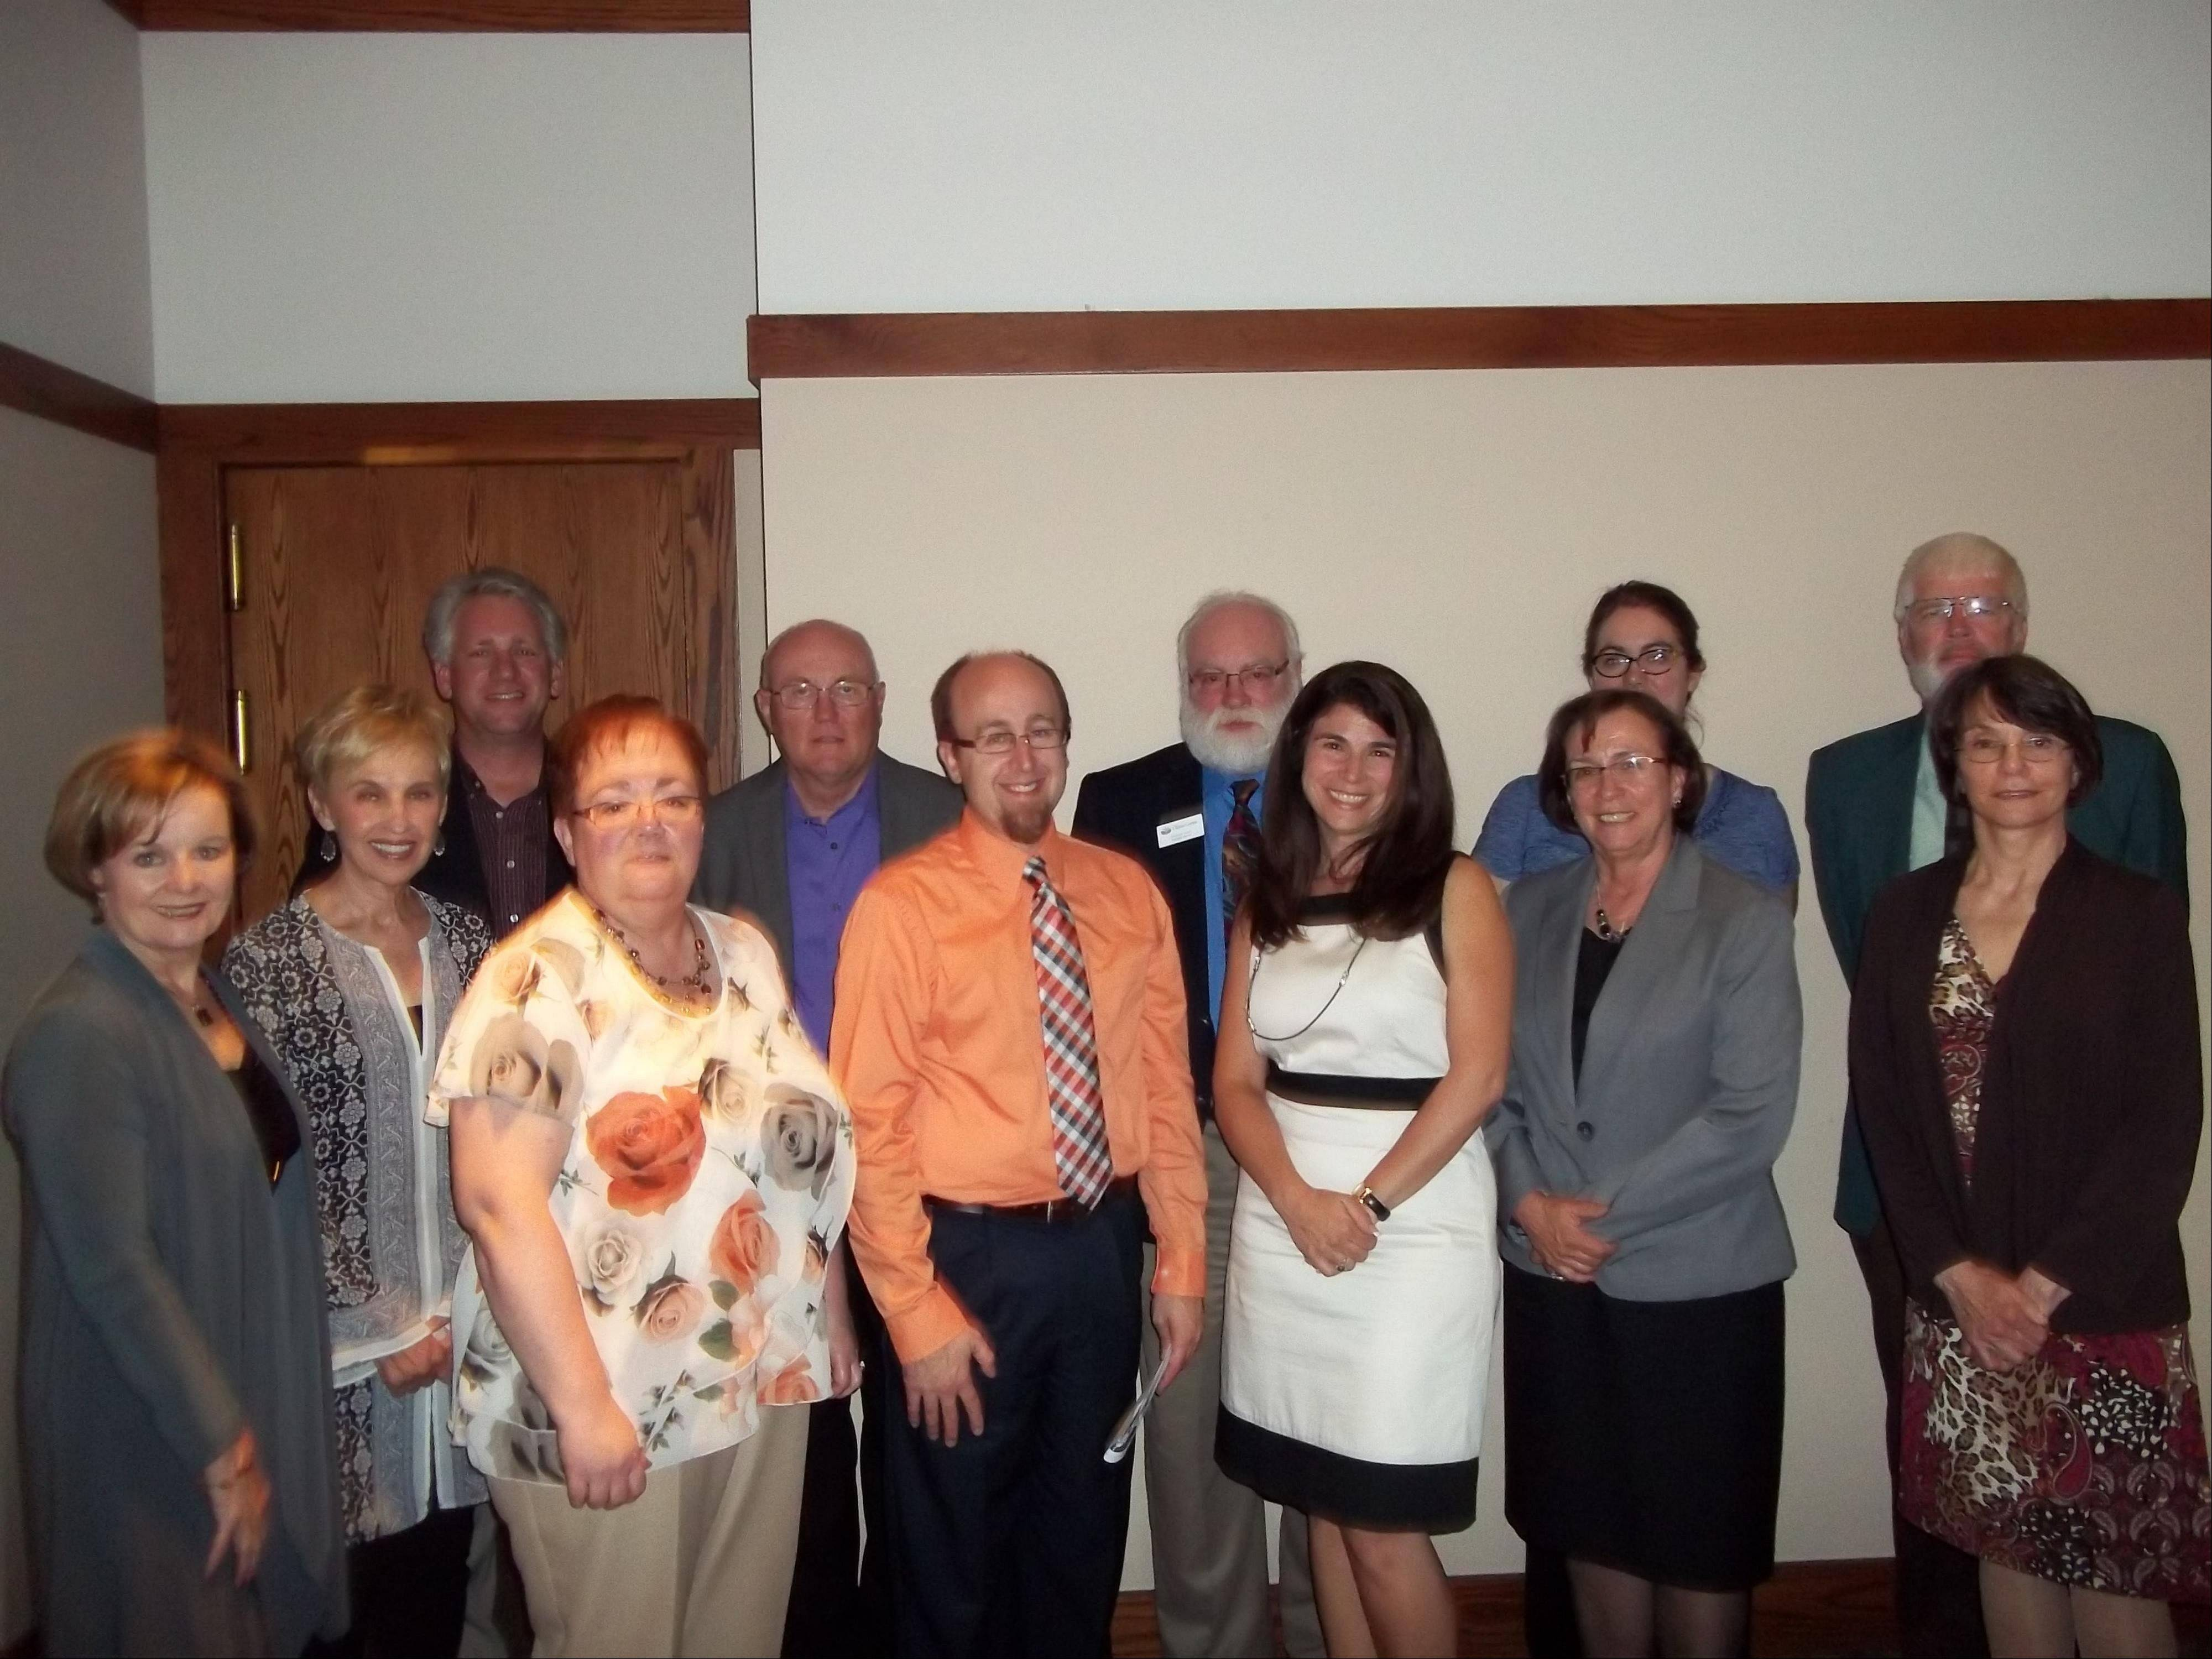 At its June meeting, the Elgin Cosmopolitan Club distributed $16,825 in grants to local organizations.